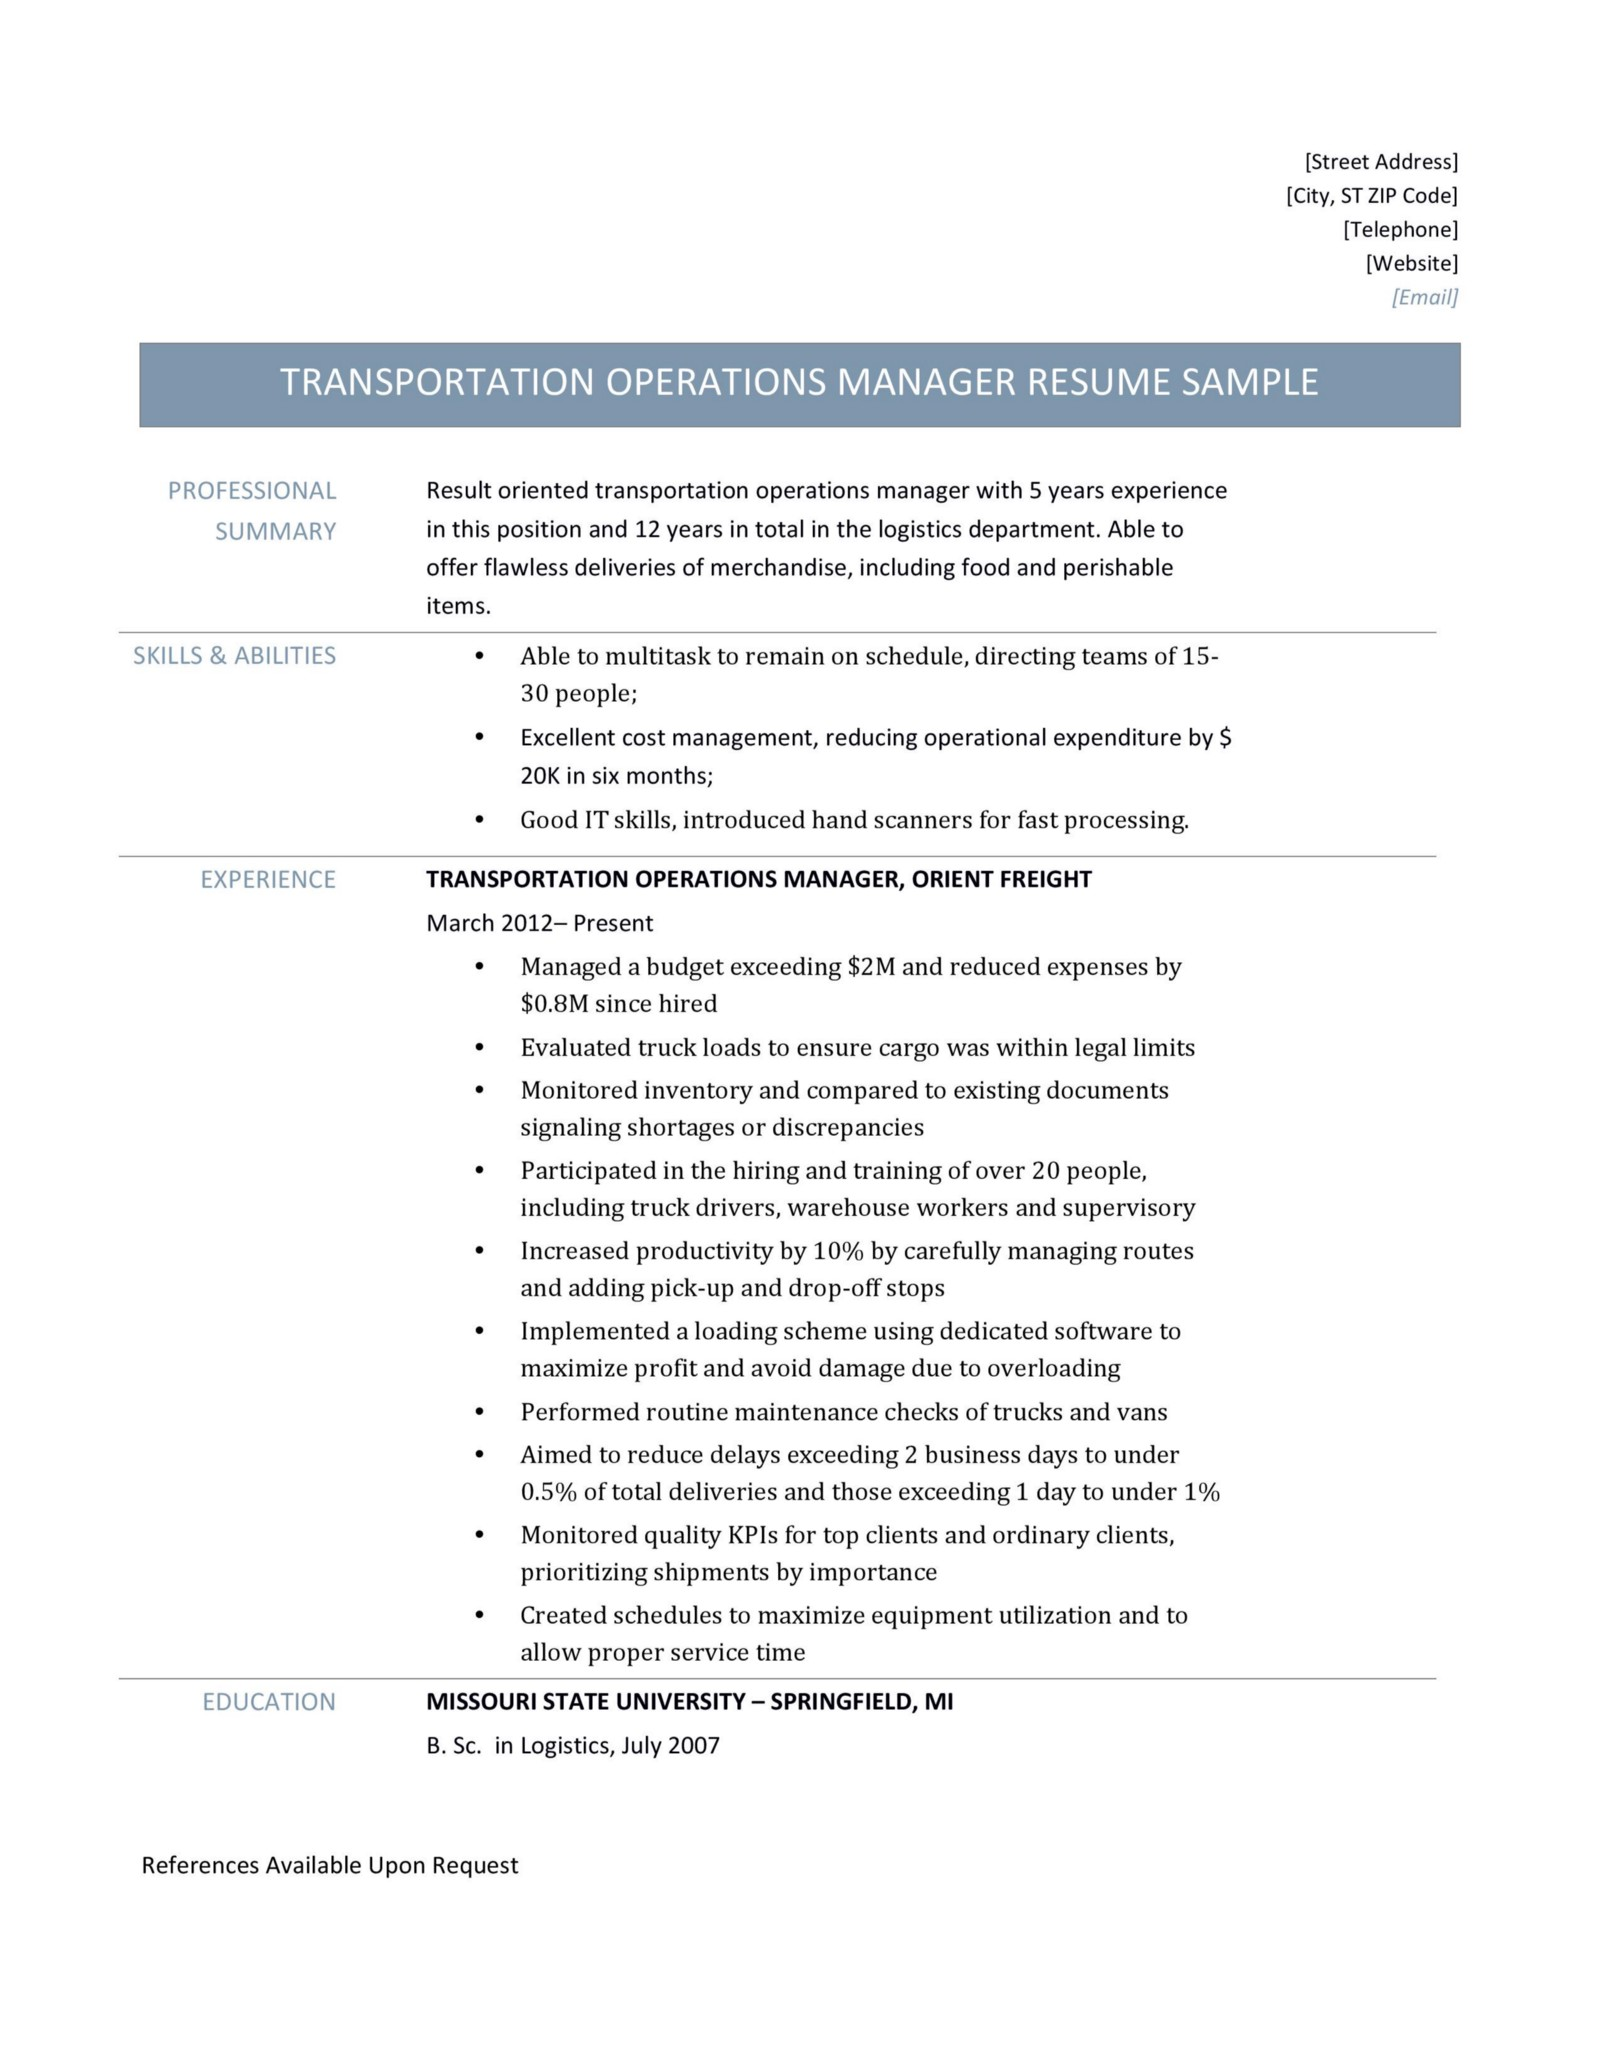 transportation operations manager resume page 001 - Sample Transportation Operations Manager Resume